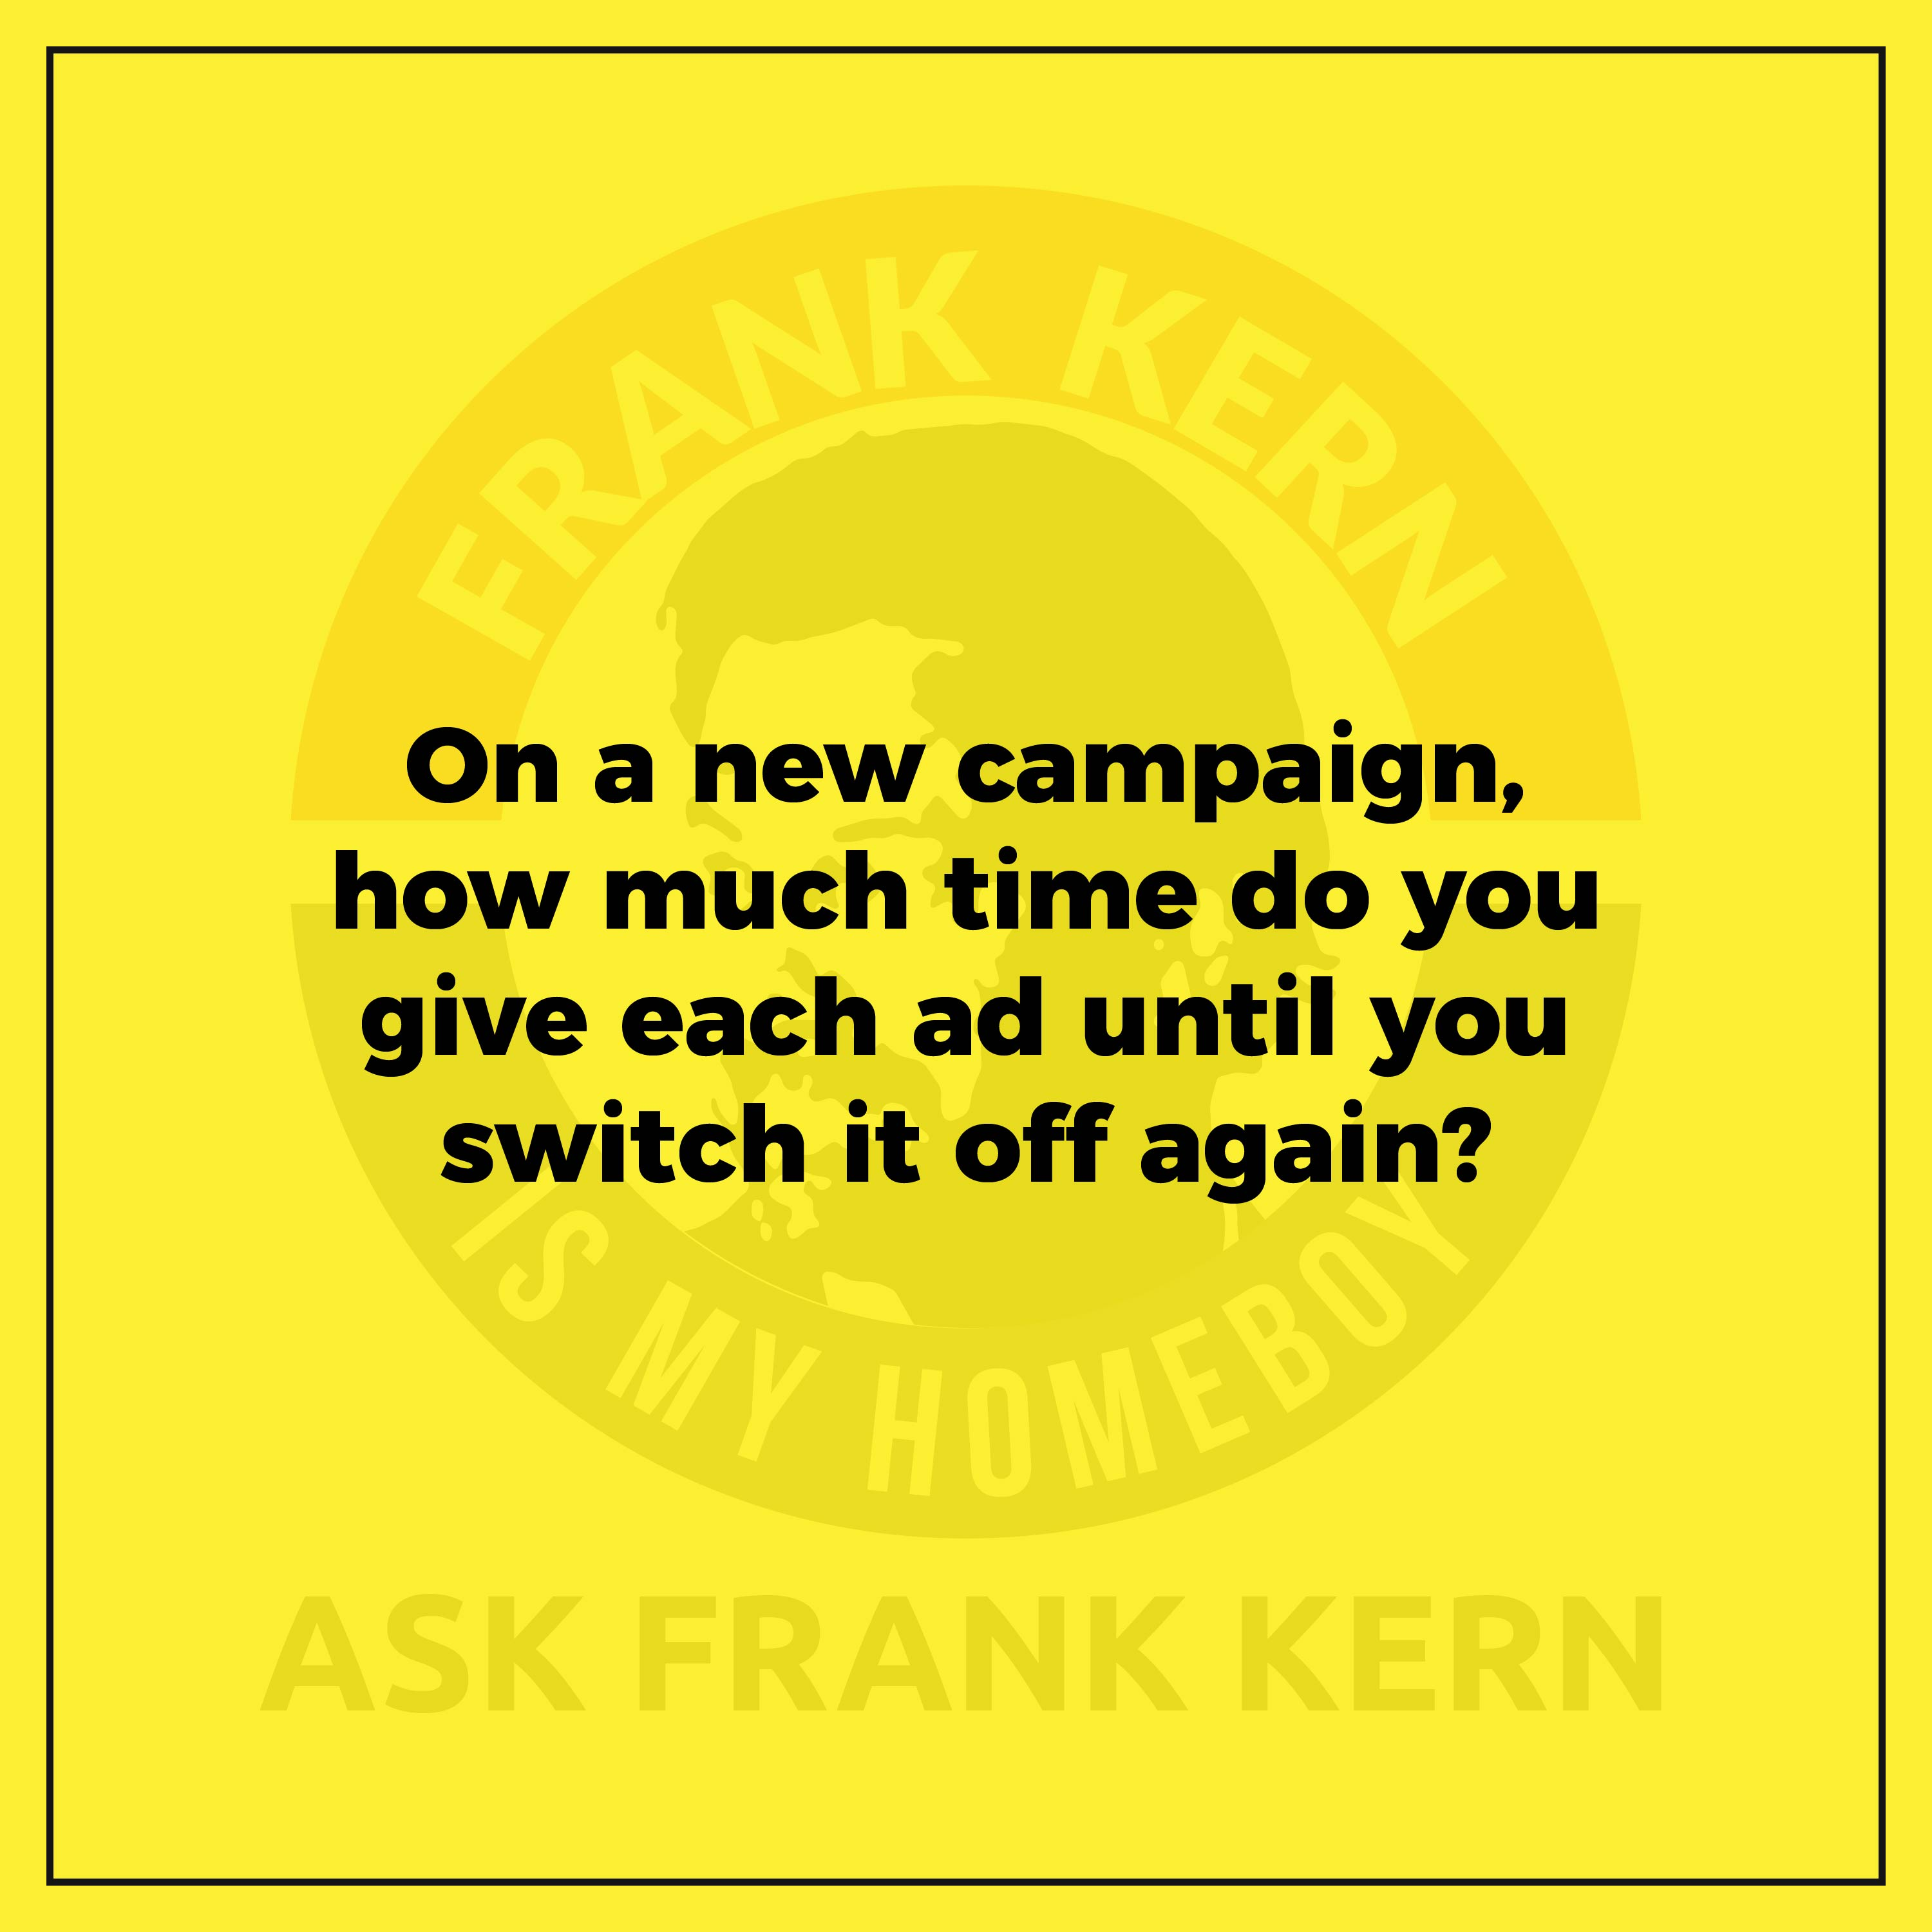 On a new campaign, how much time do you give each ad until you switch it off again?